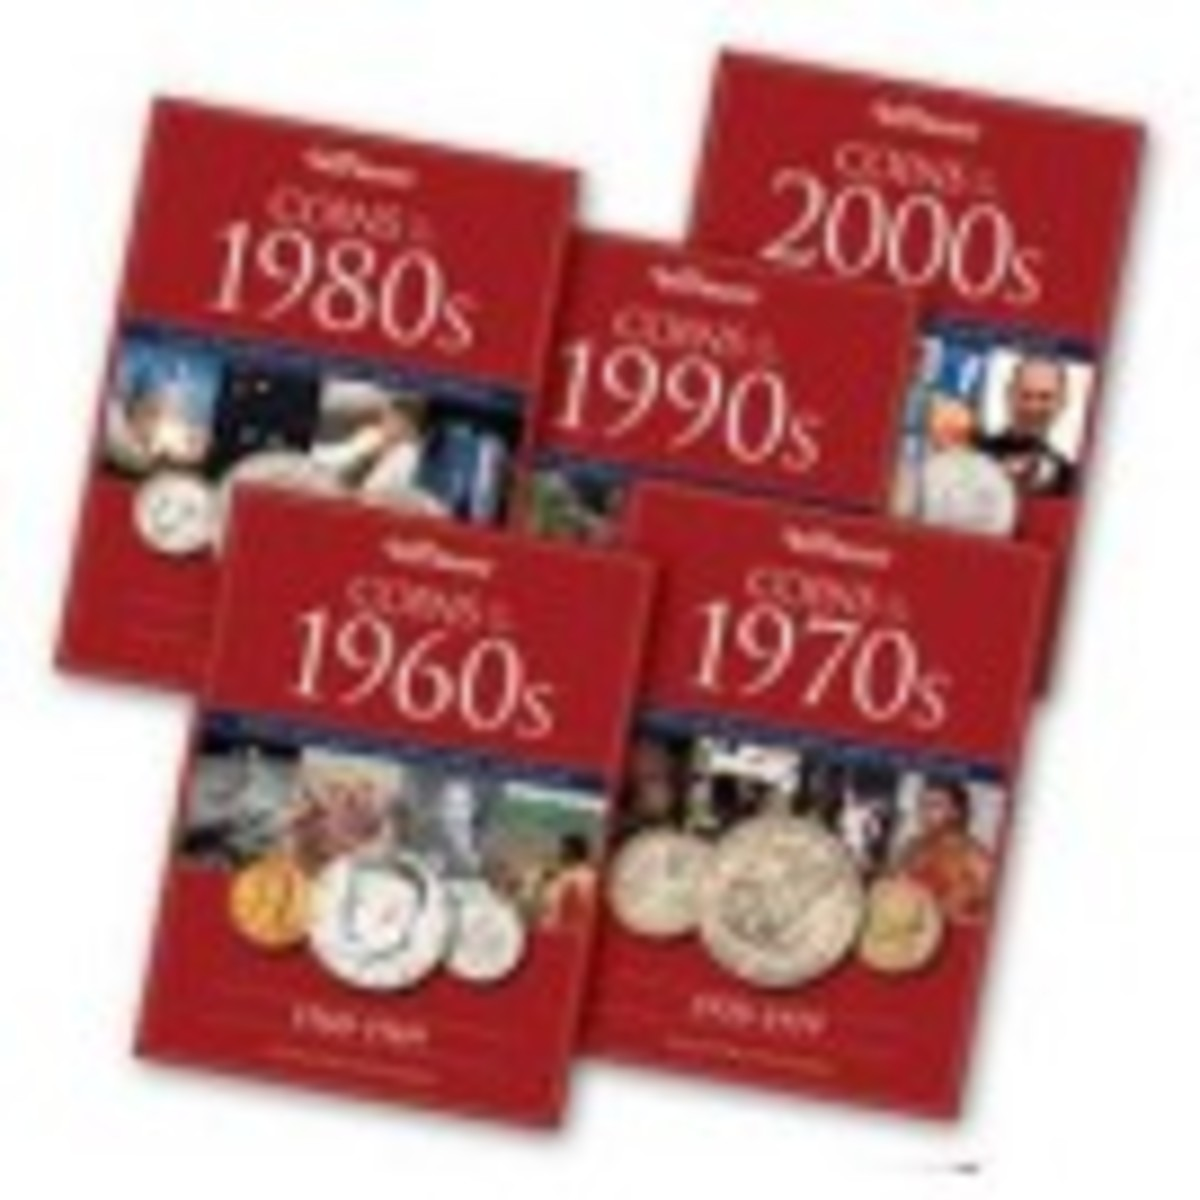 Warman's Coins of 1960s-2000s Decades